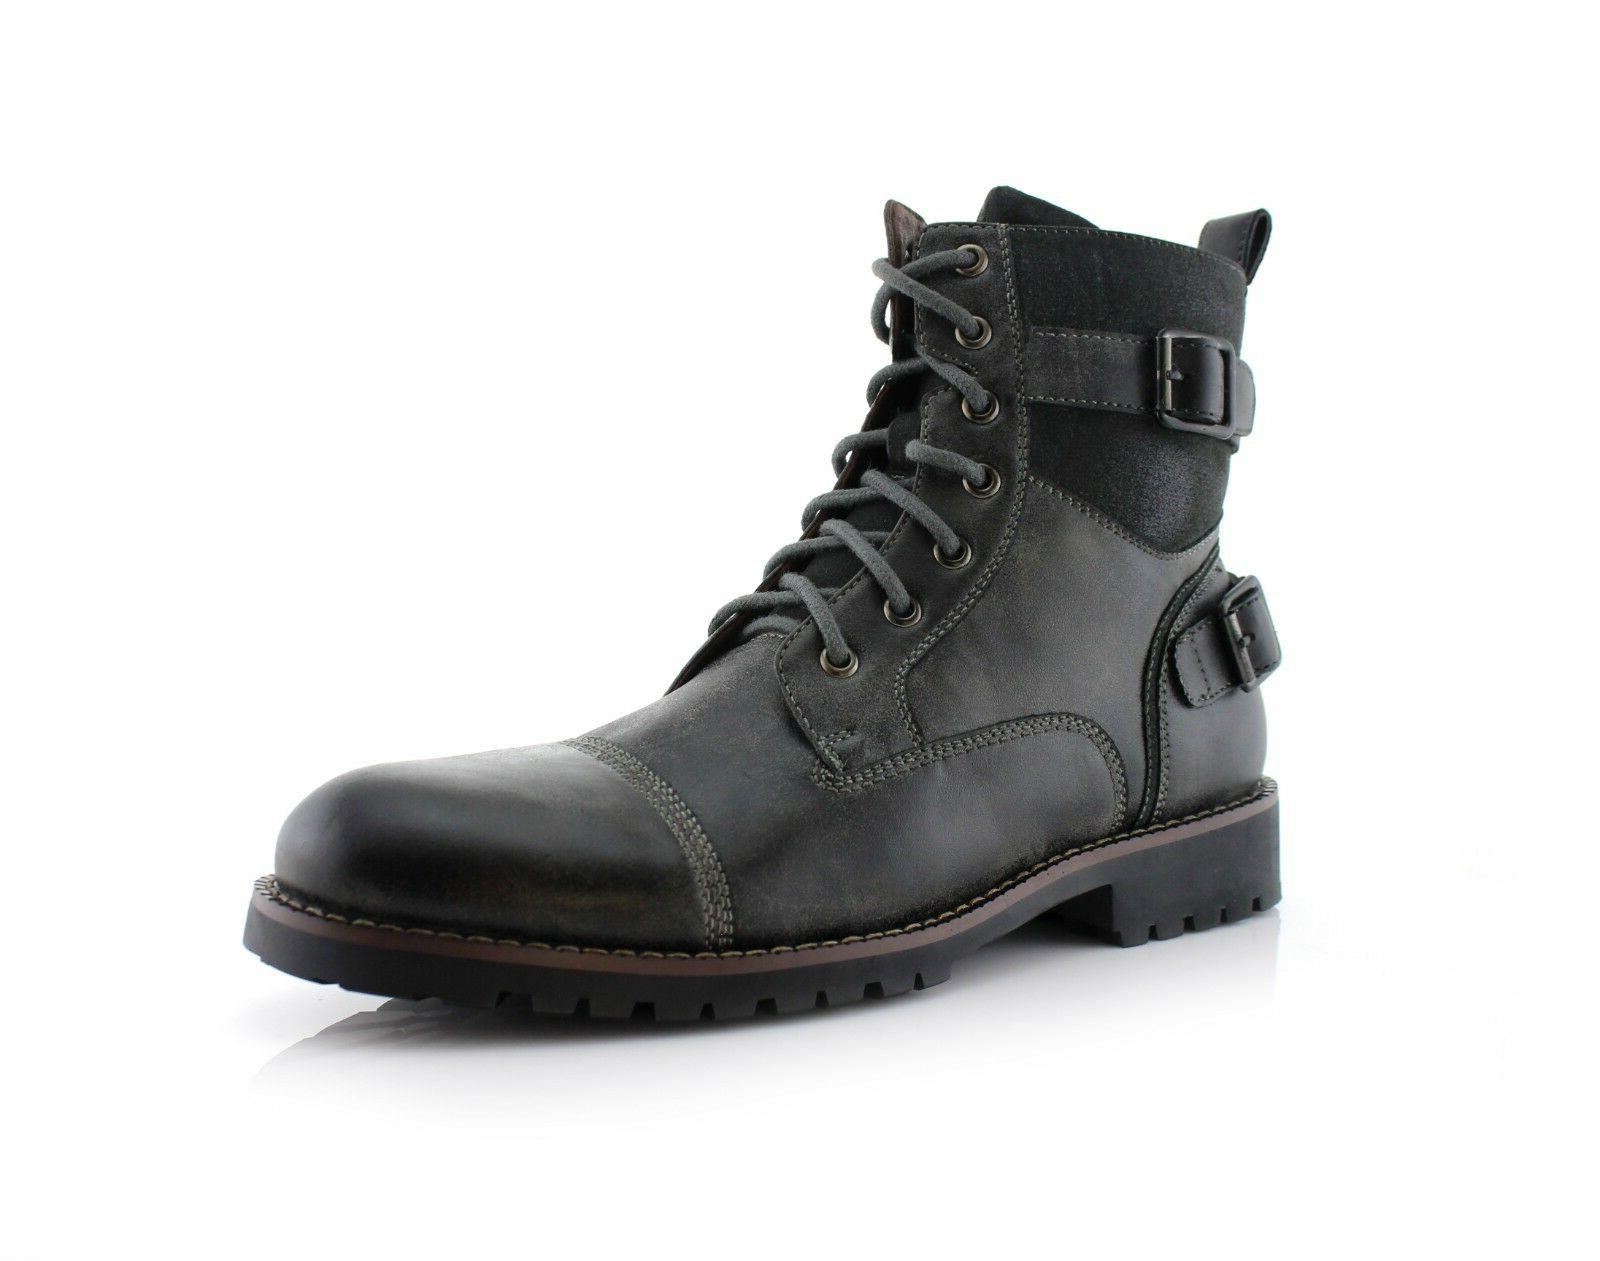 Men's Casual Boots Riding Hiking Buckle Synthetic Leather